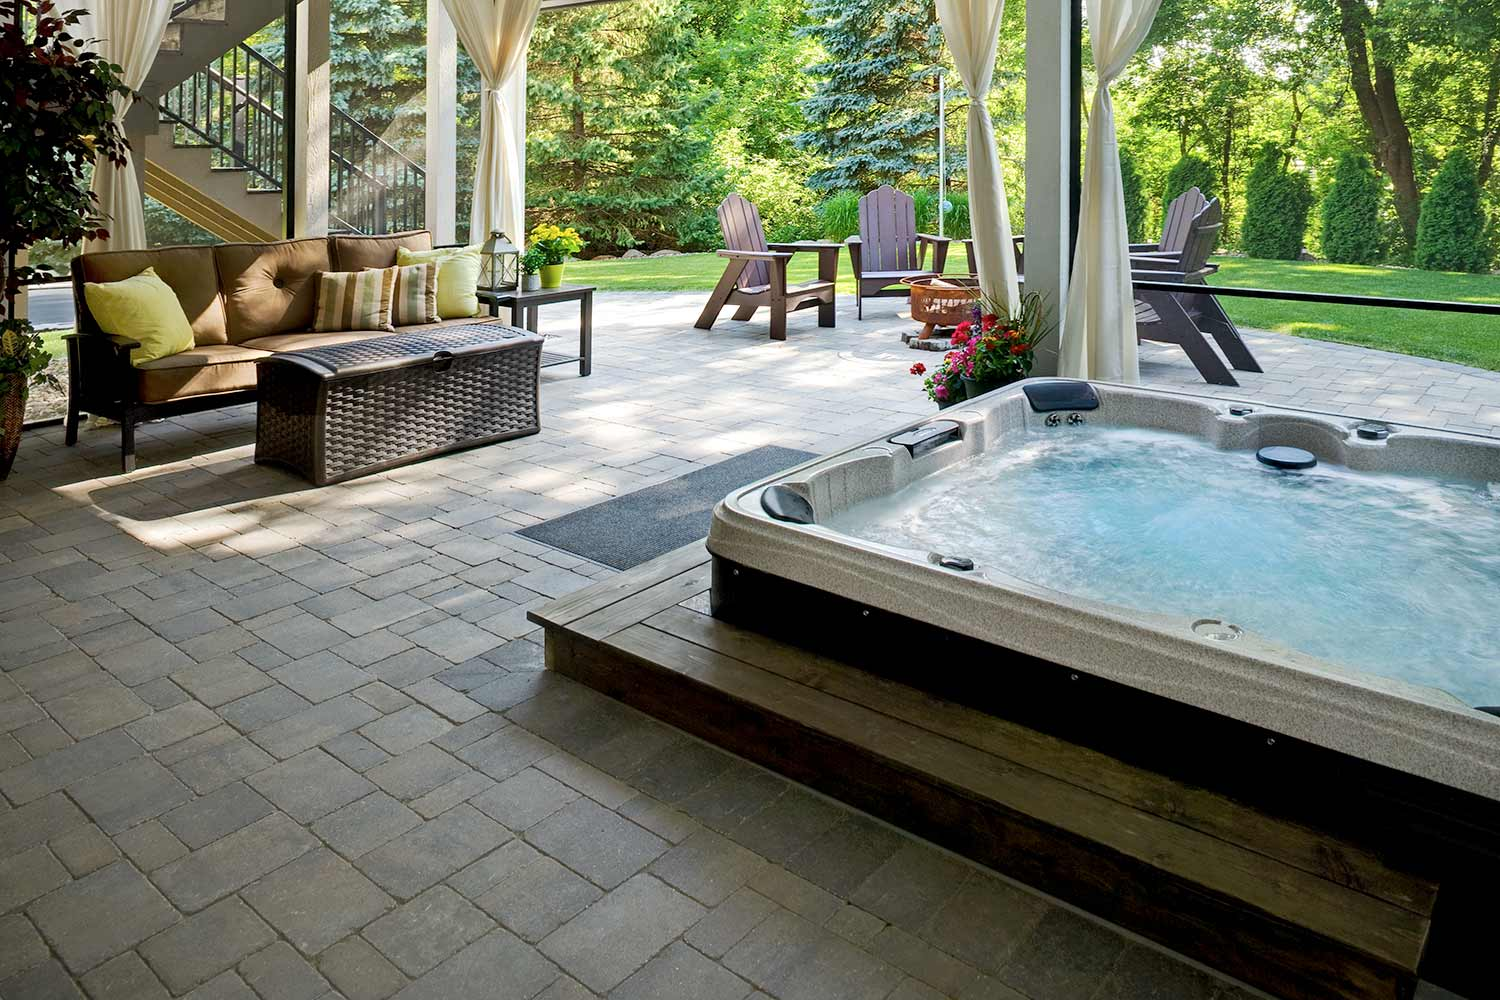 sunked hot tub and outdoor living room with bug screens and curtains